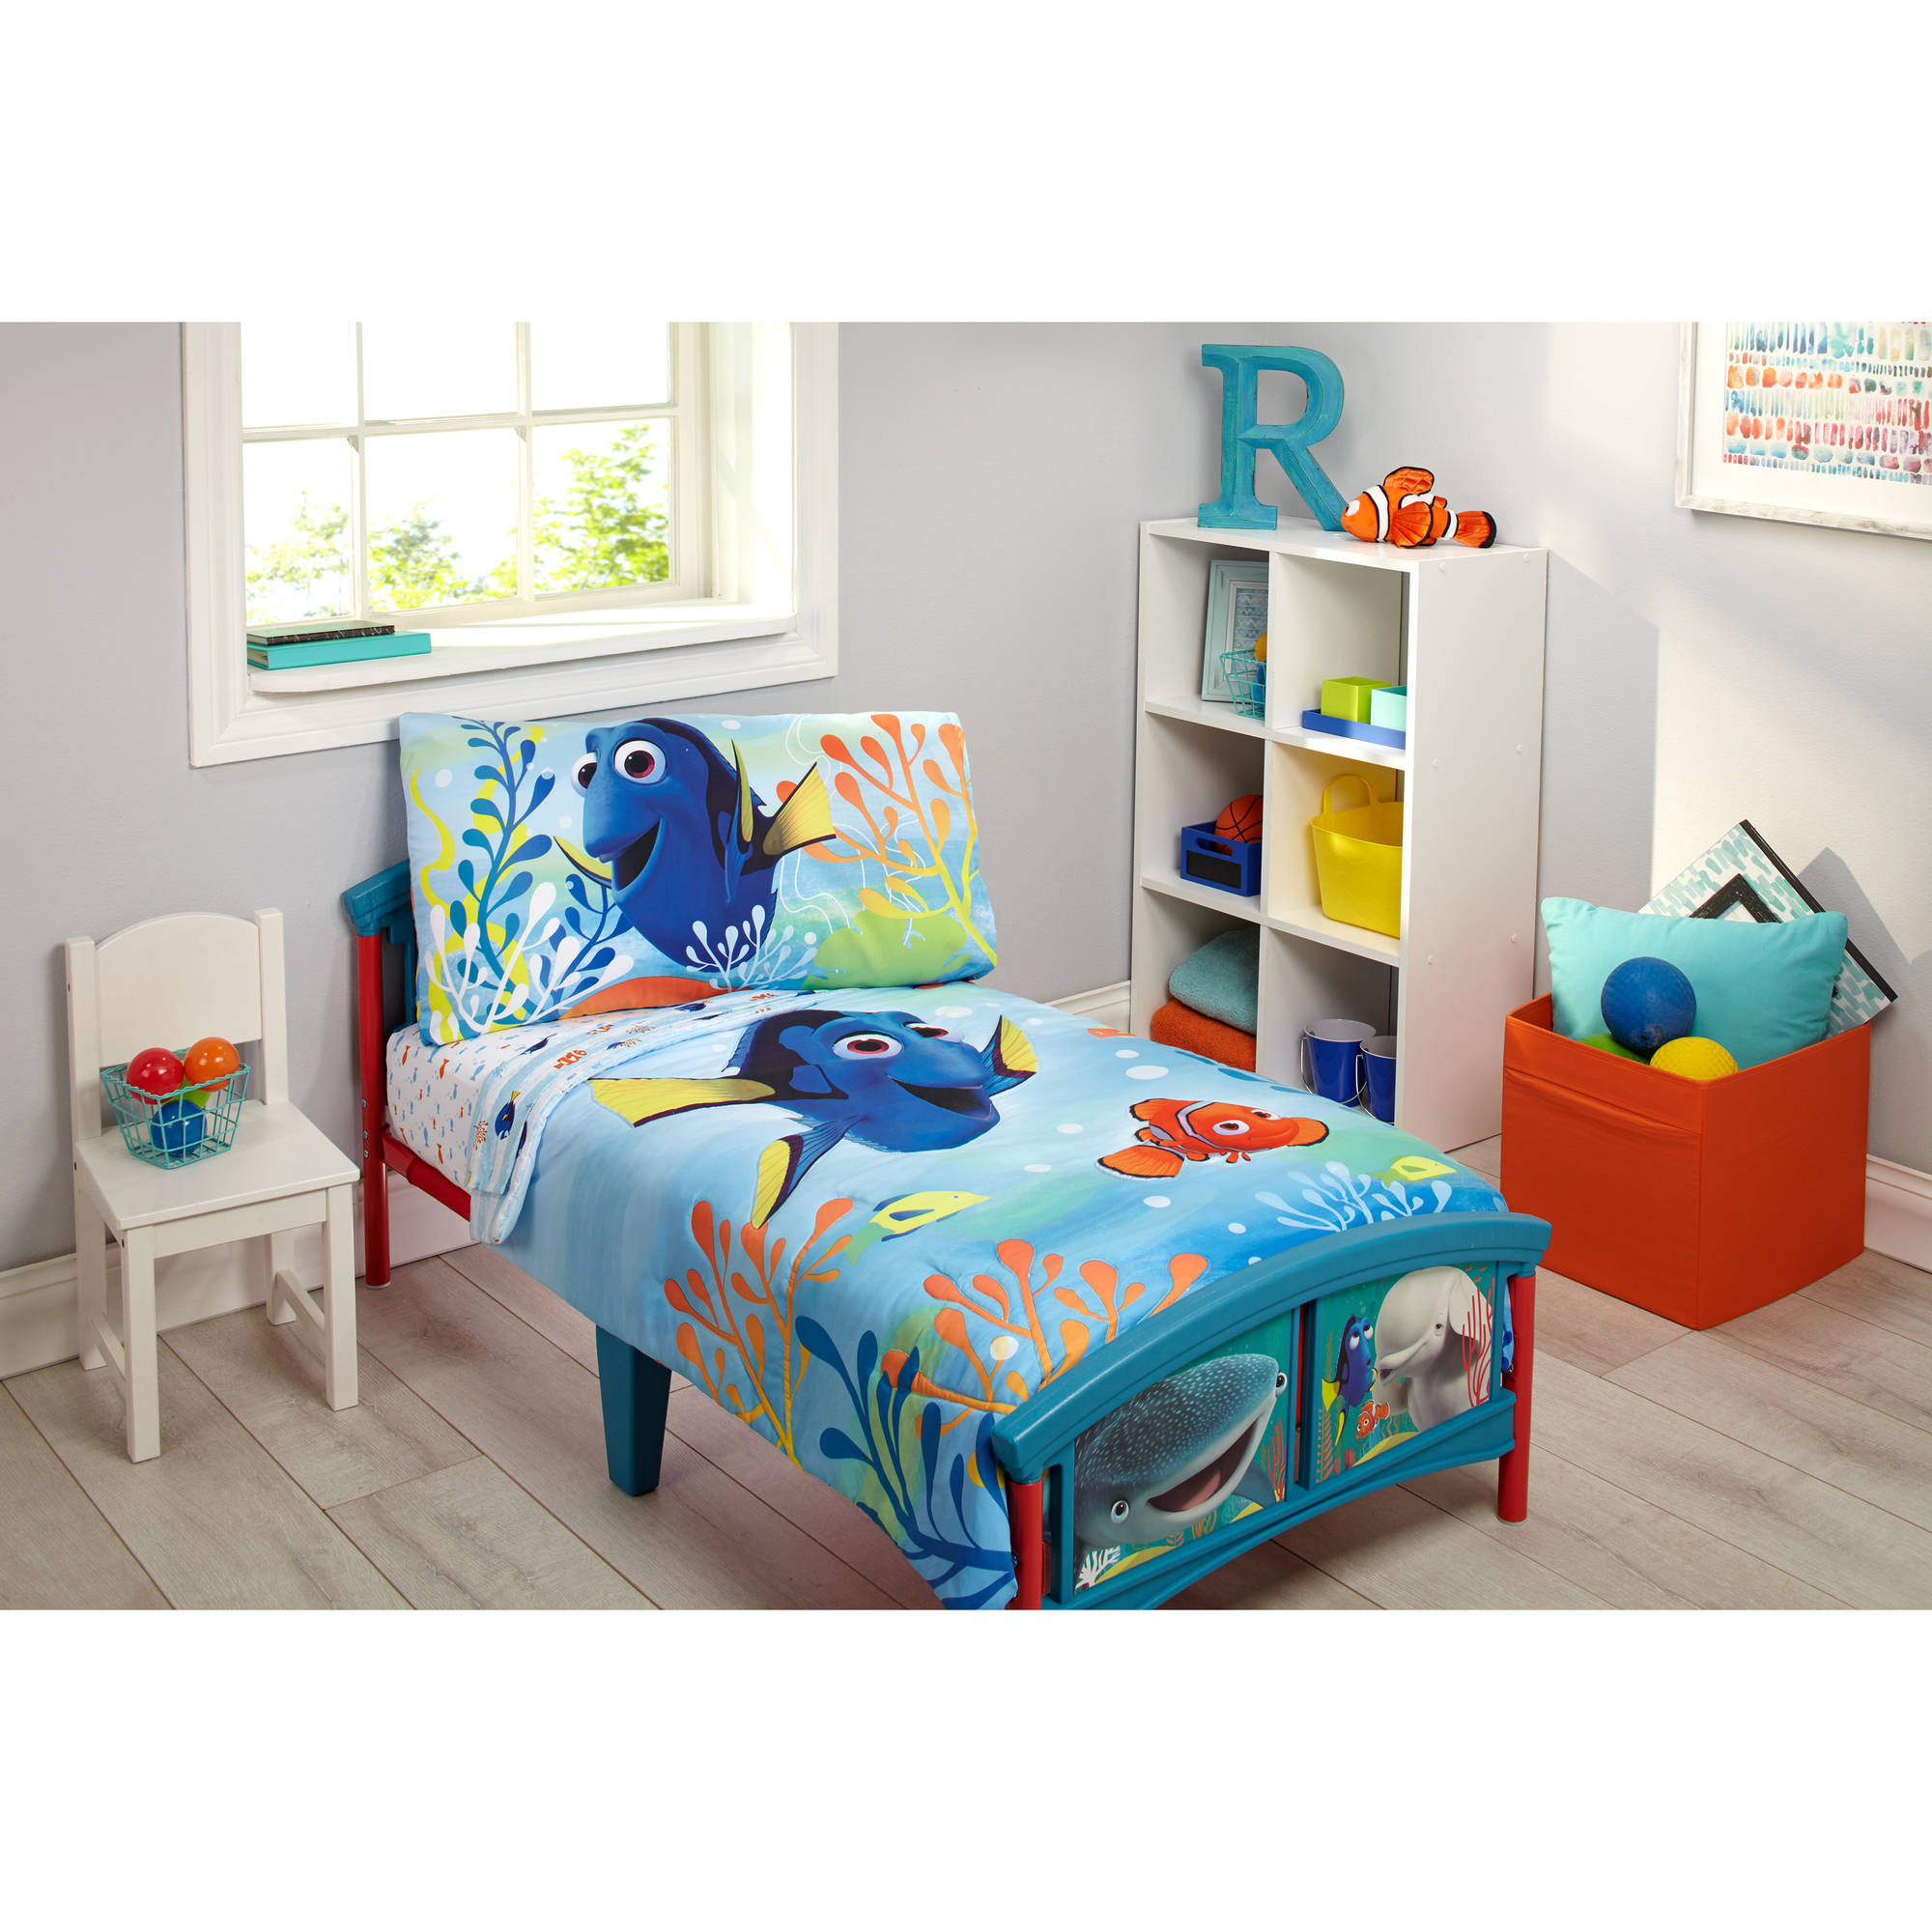 Toddler Bedding For The Growing Children Yonohomedesigncom